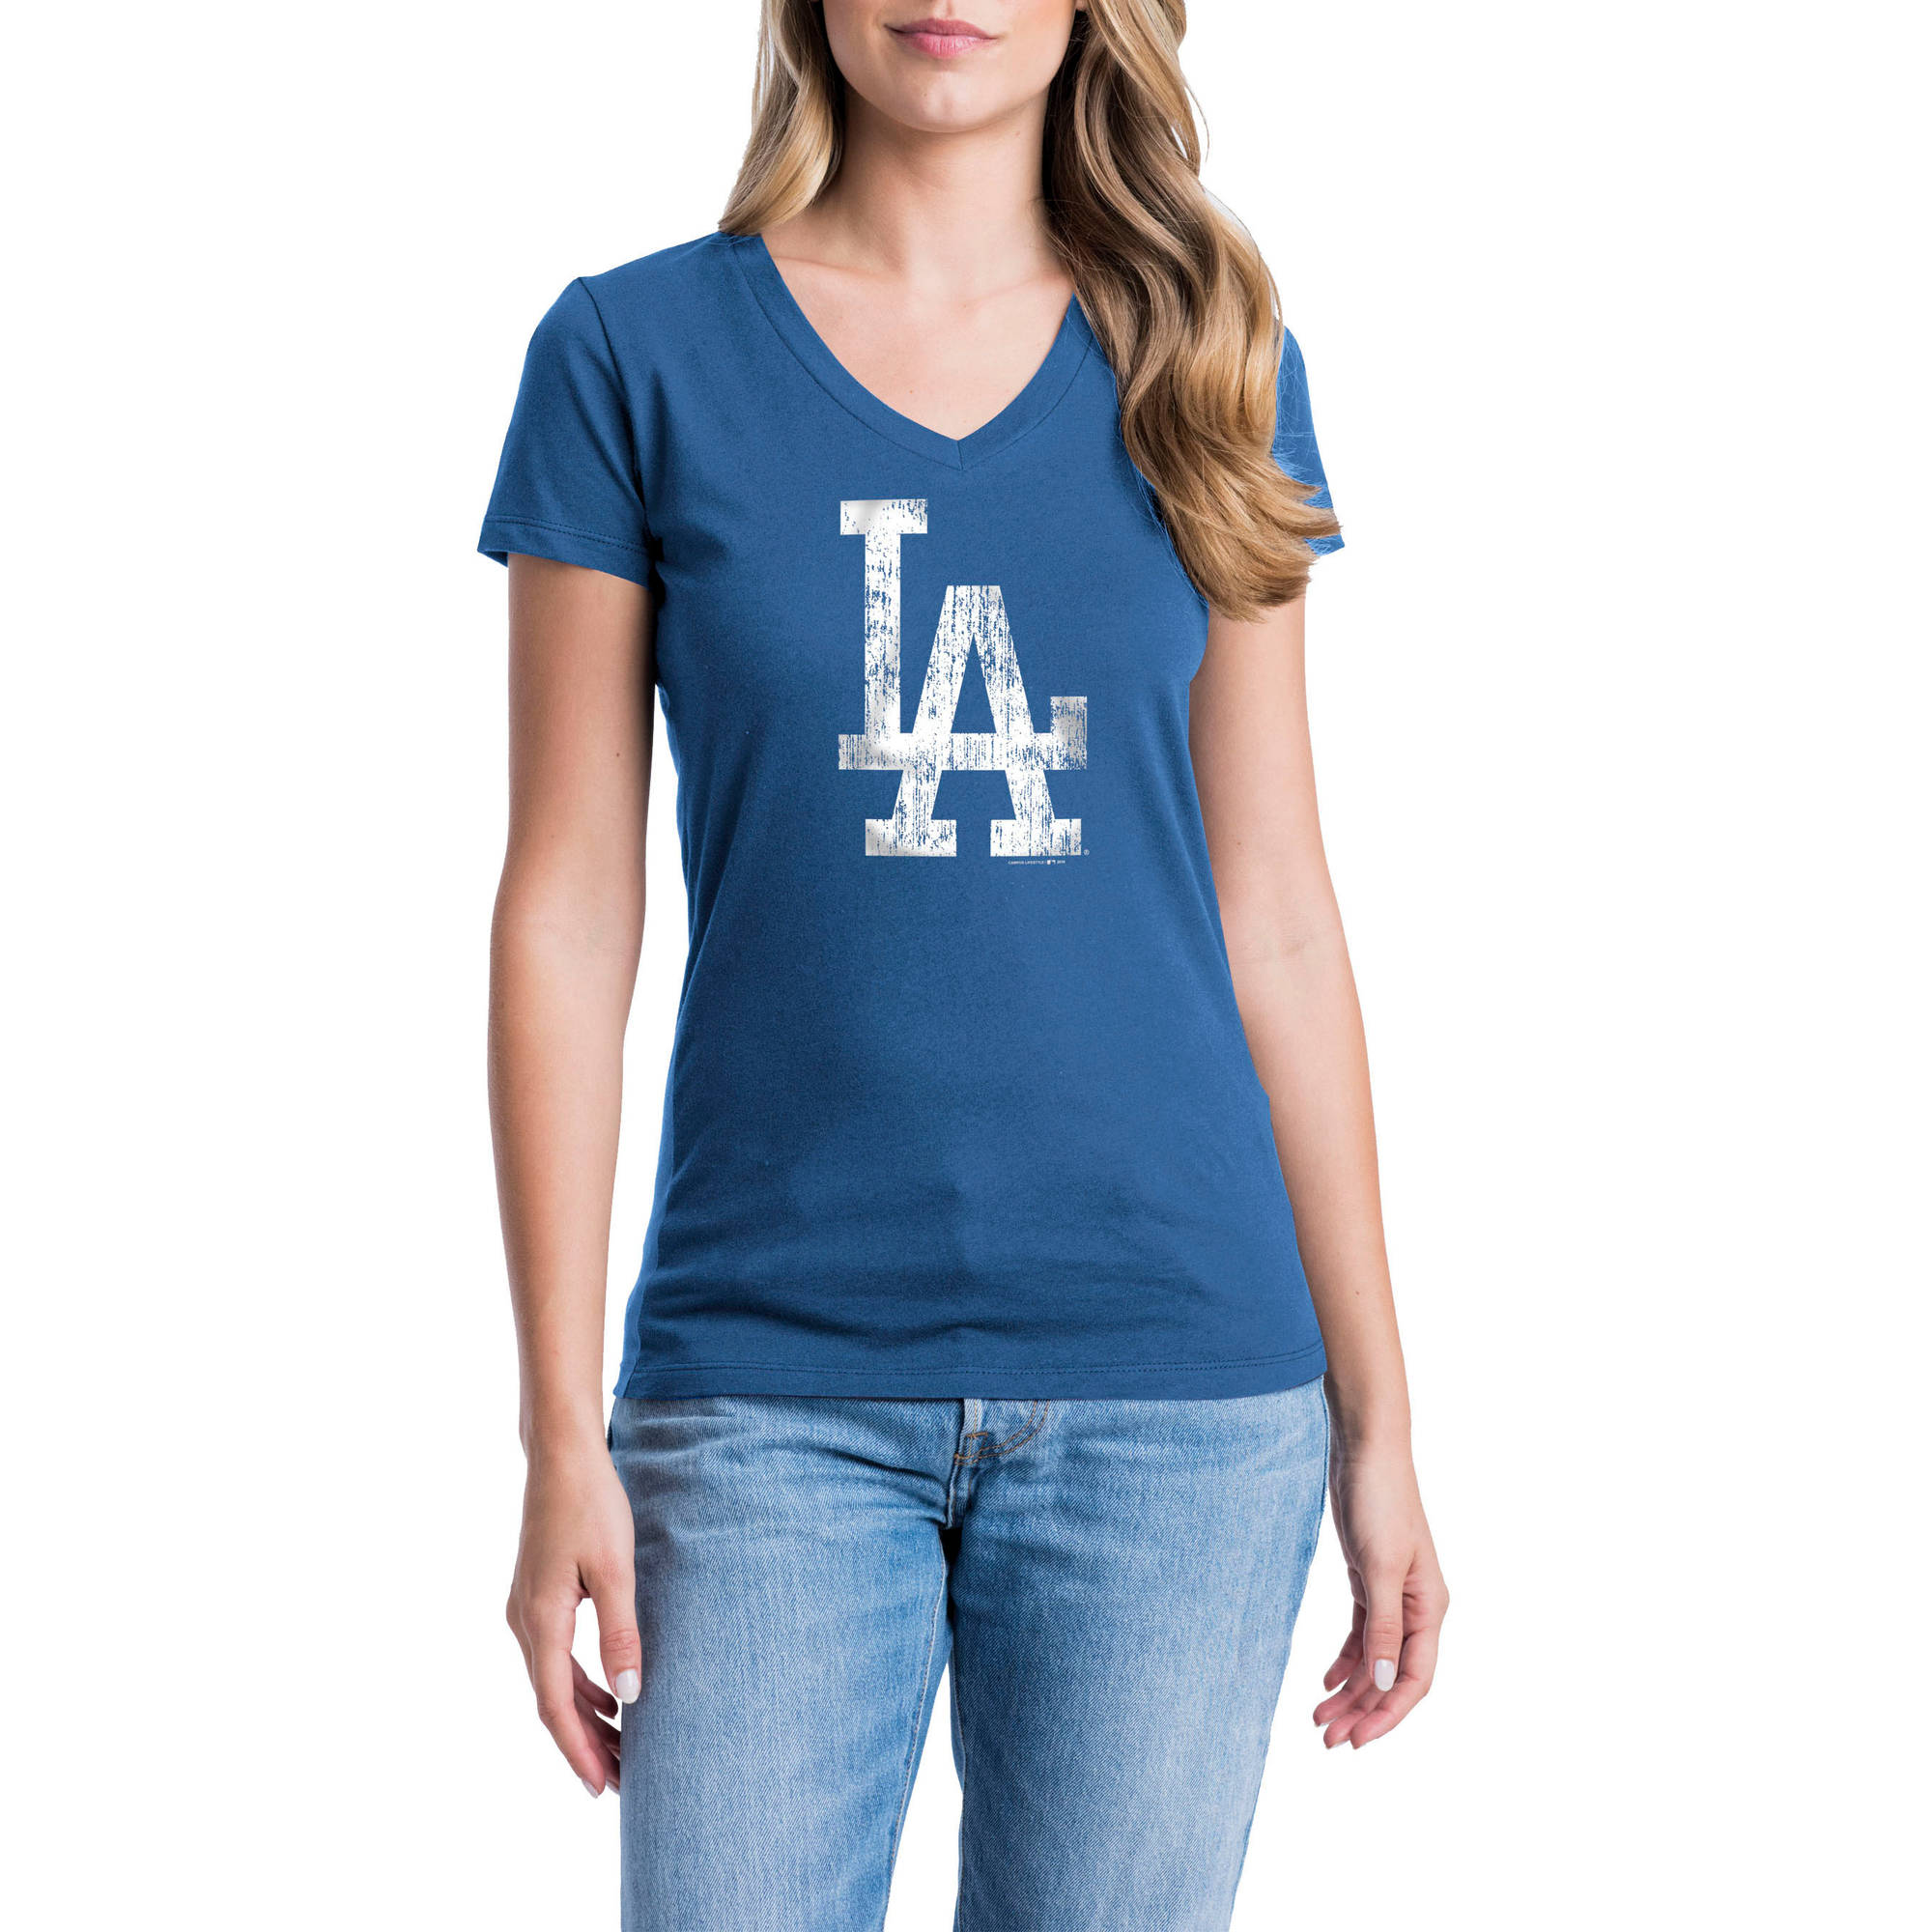 Los Angeles Dodgers Womens Short Sleeve Graphic Tee